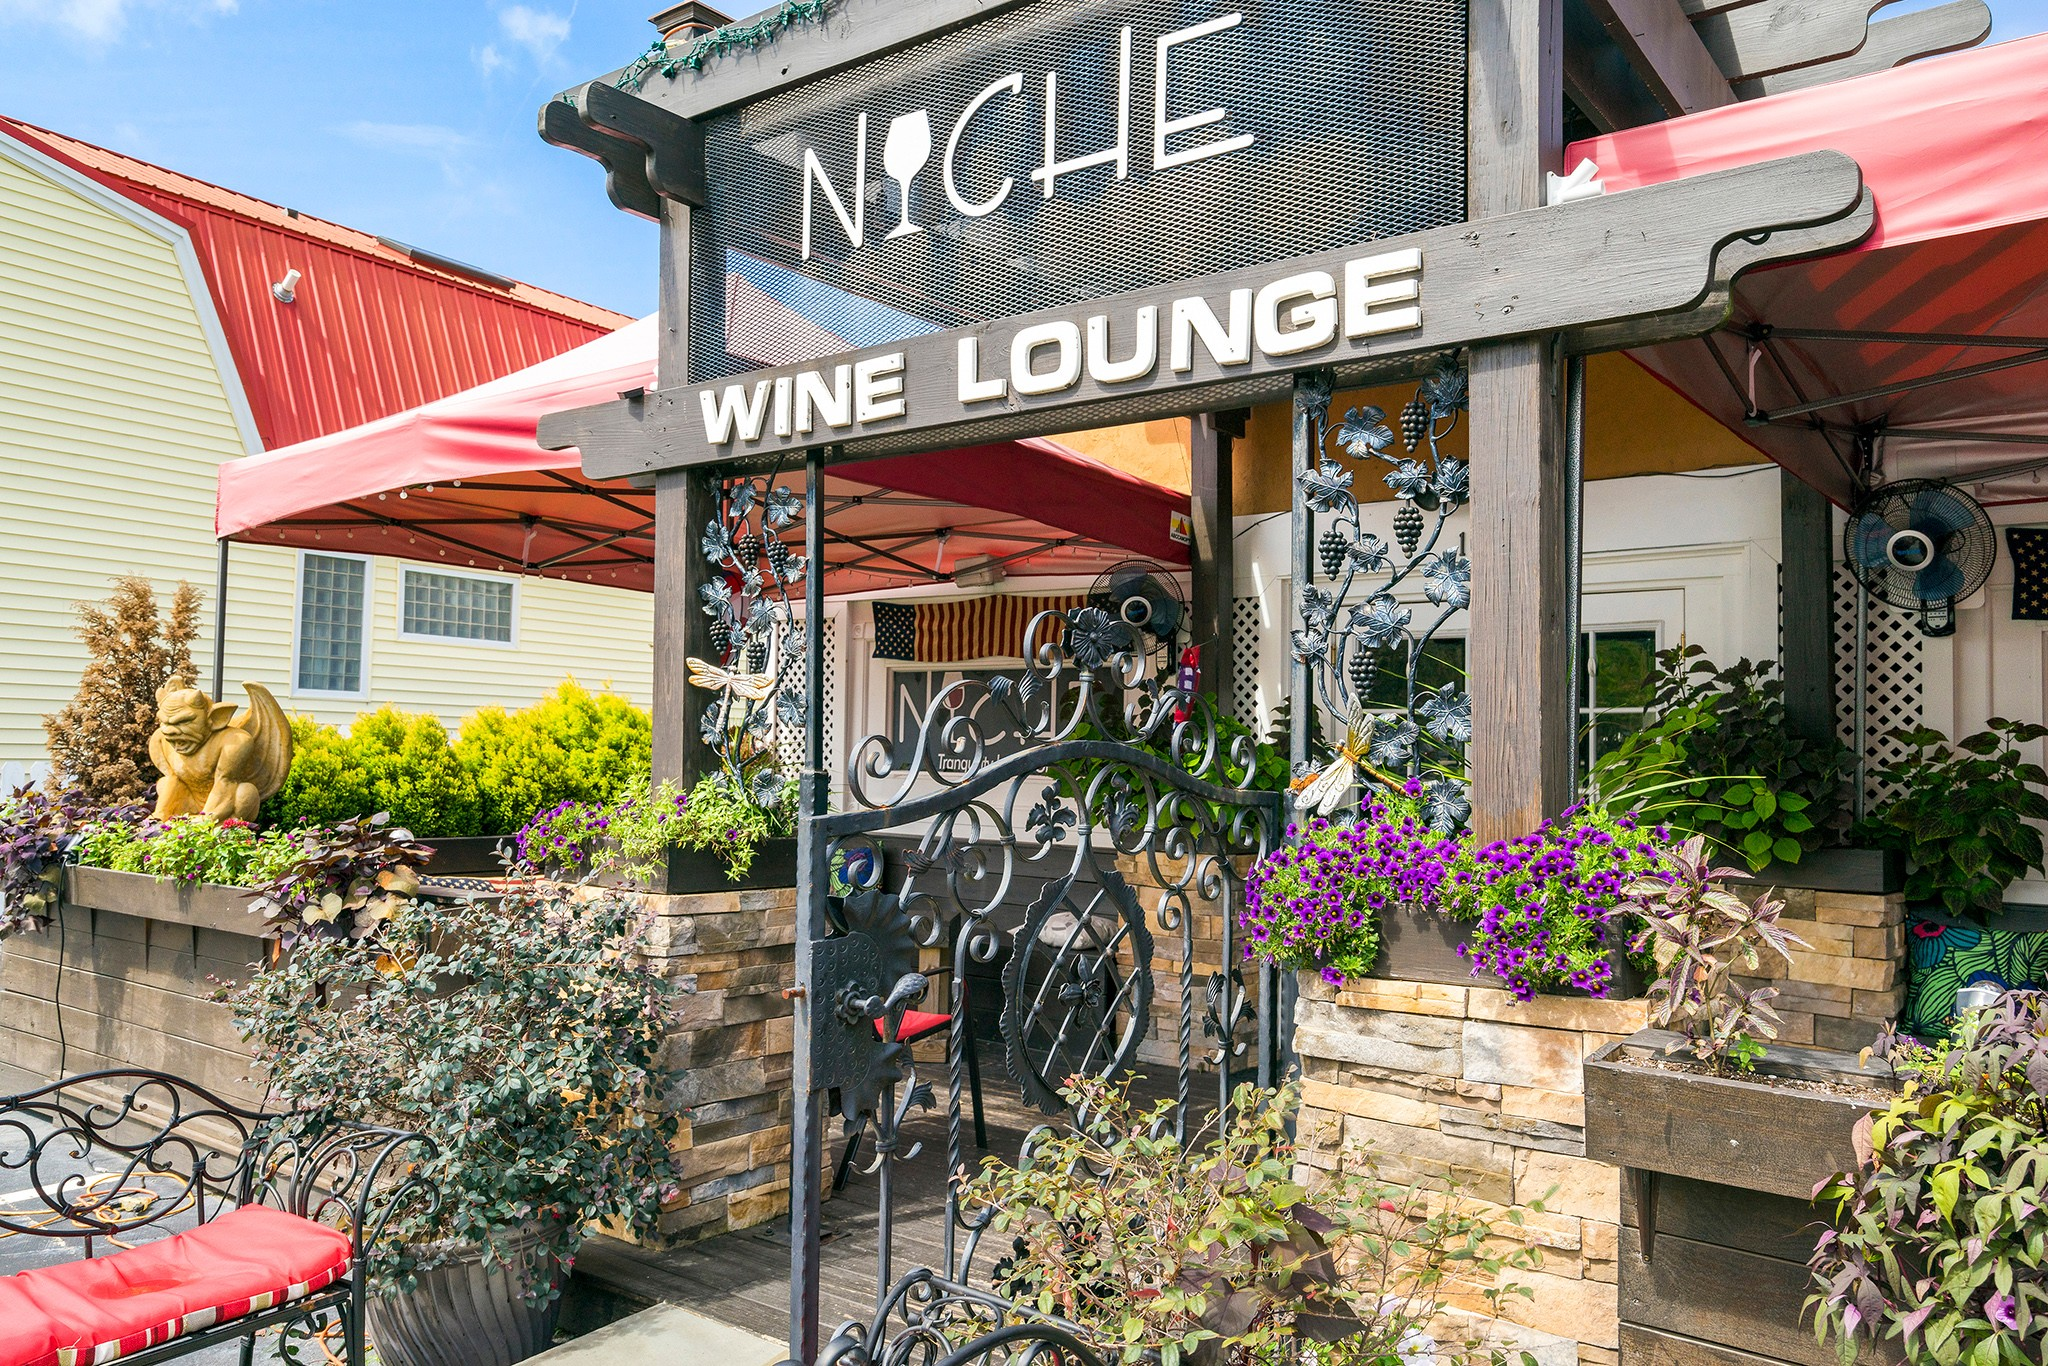 Royal Oaks Homes, Ballentine Place, Holly Springs, Niche Wine Lounge